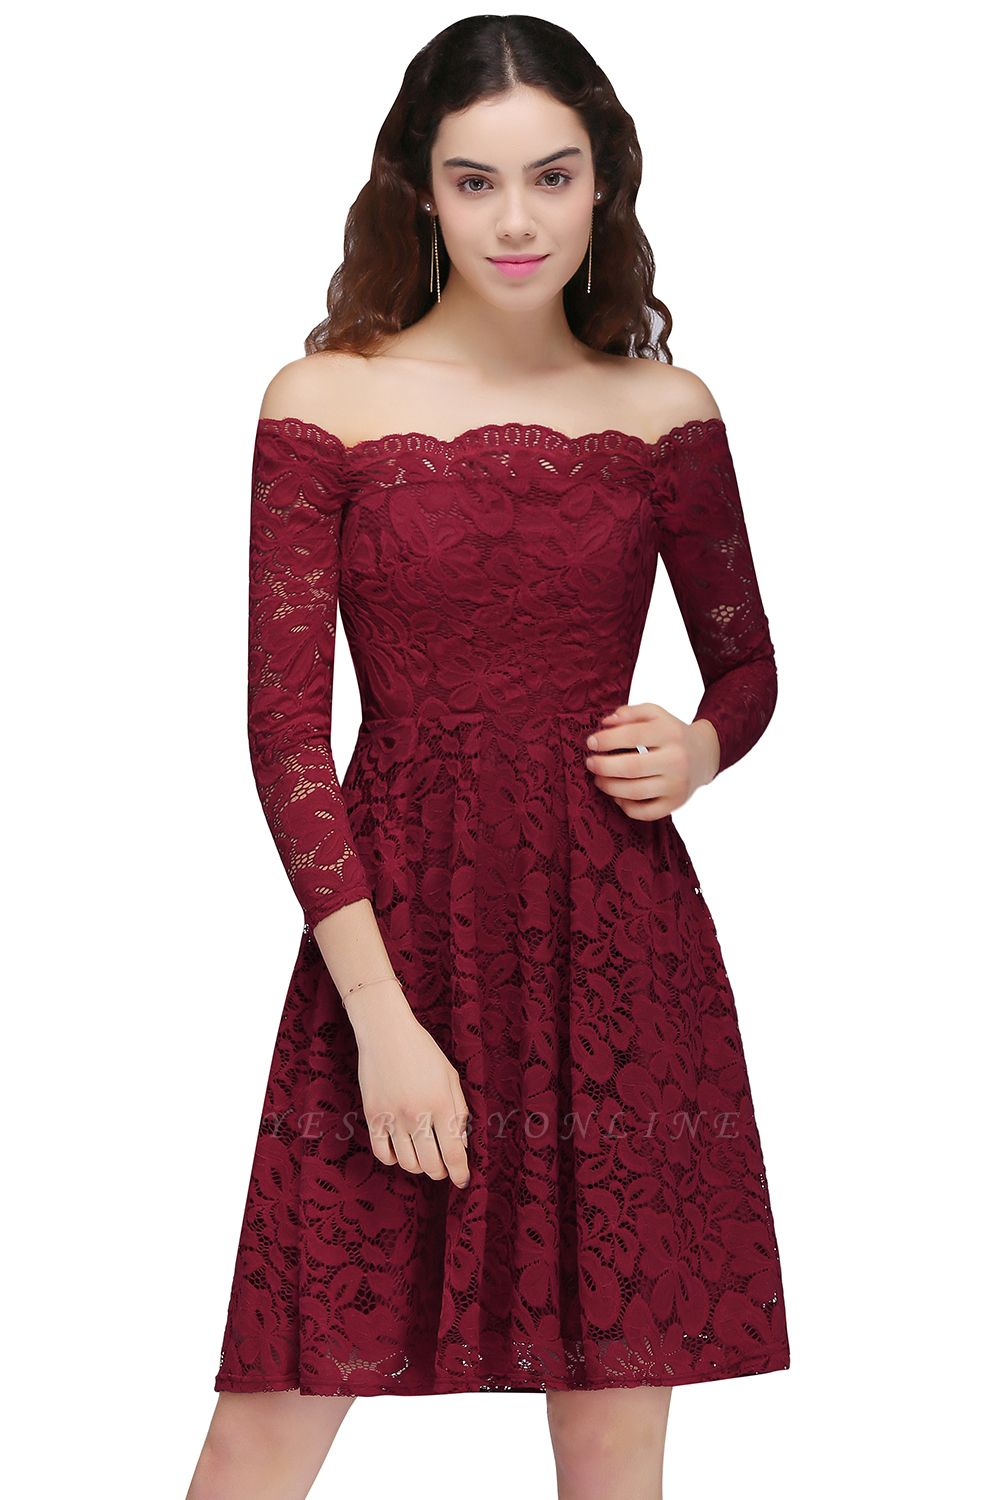 Cheap A-Line Off-the-Shoulder Short Lace Burgundy Homecoming Dress in Stock